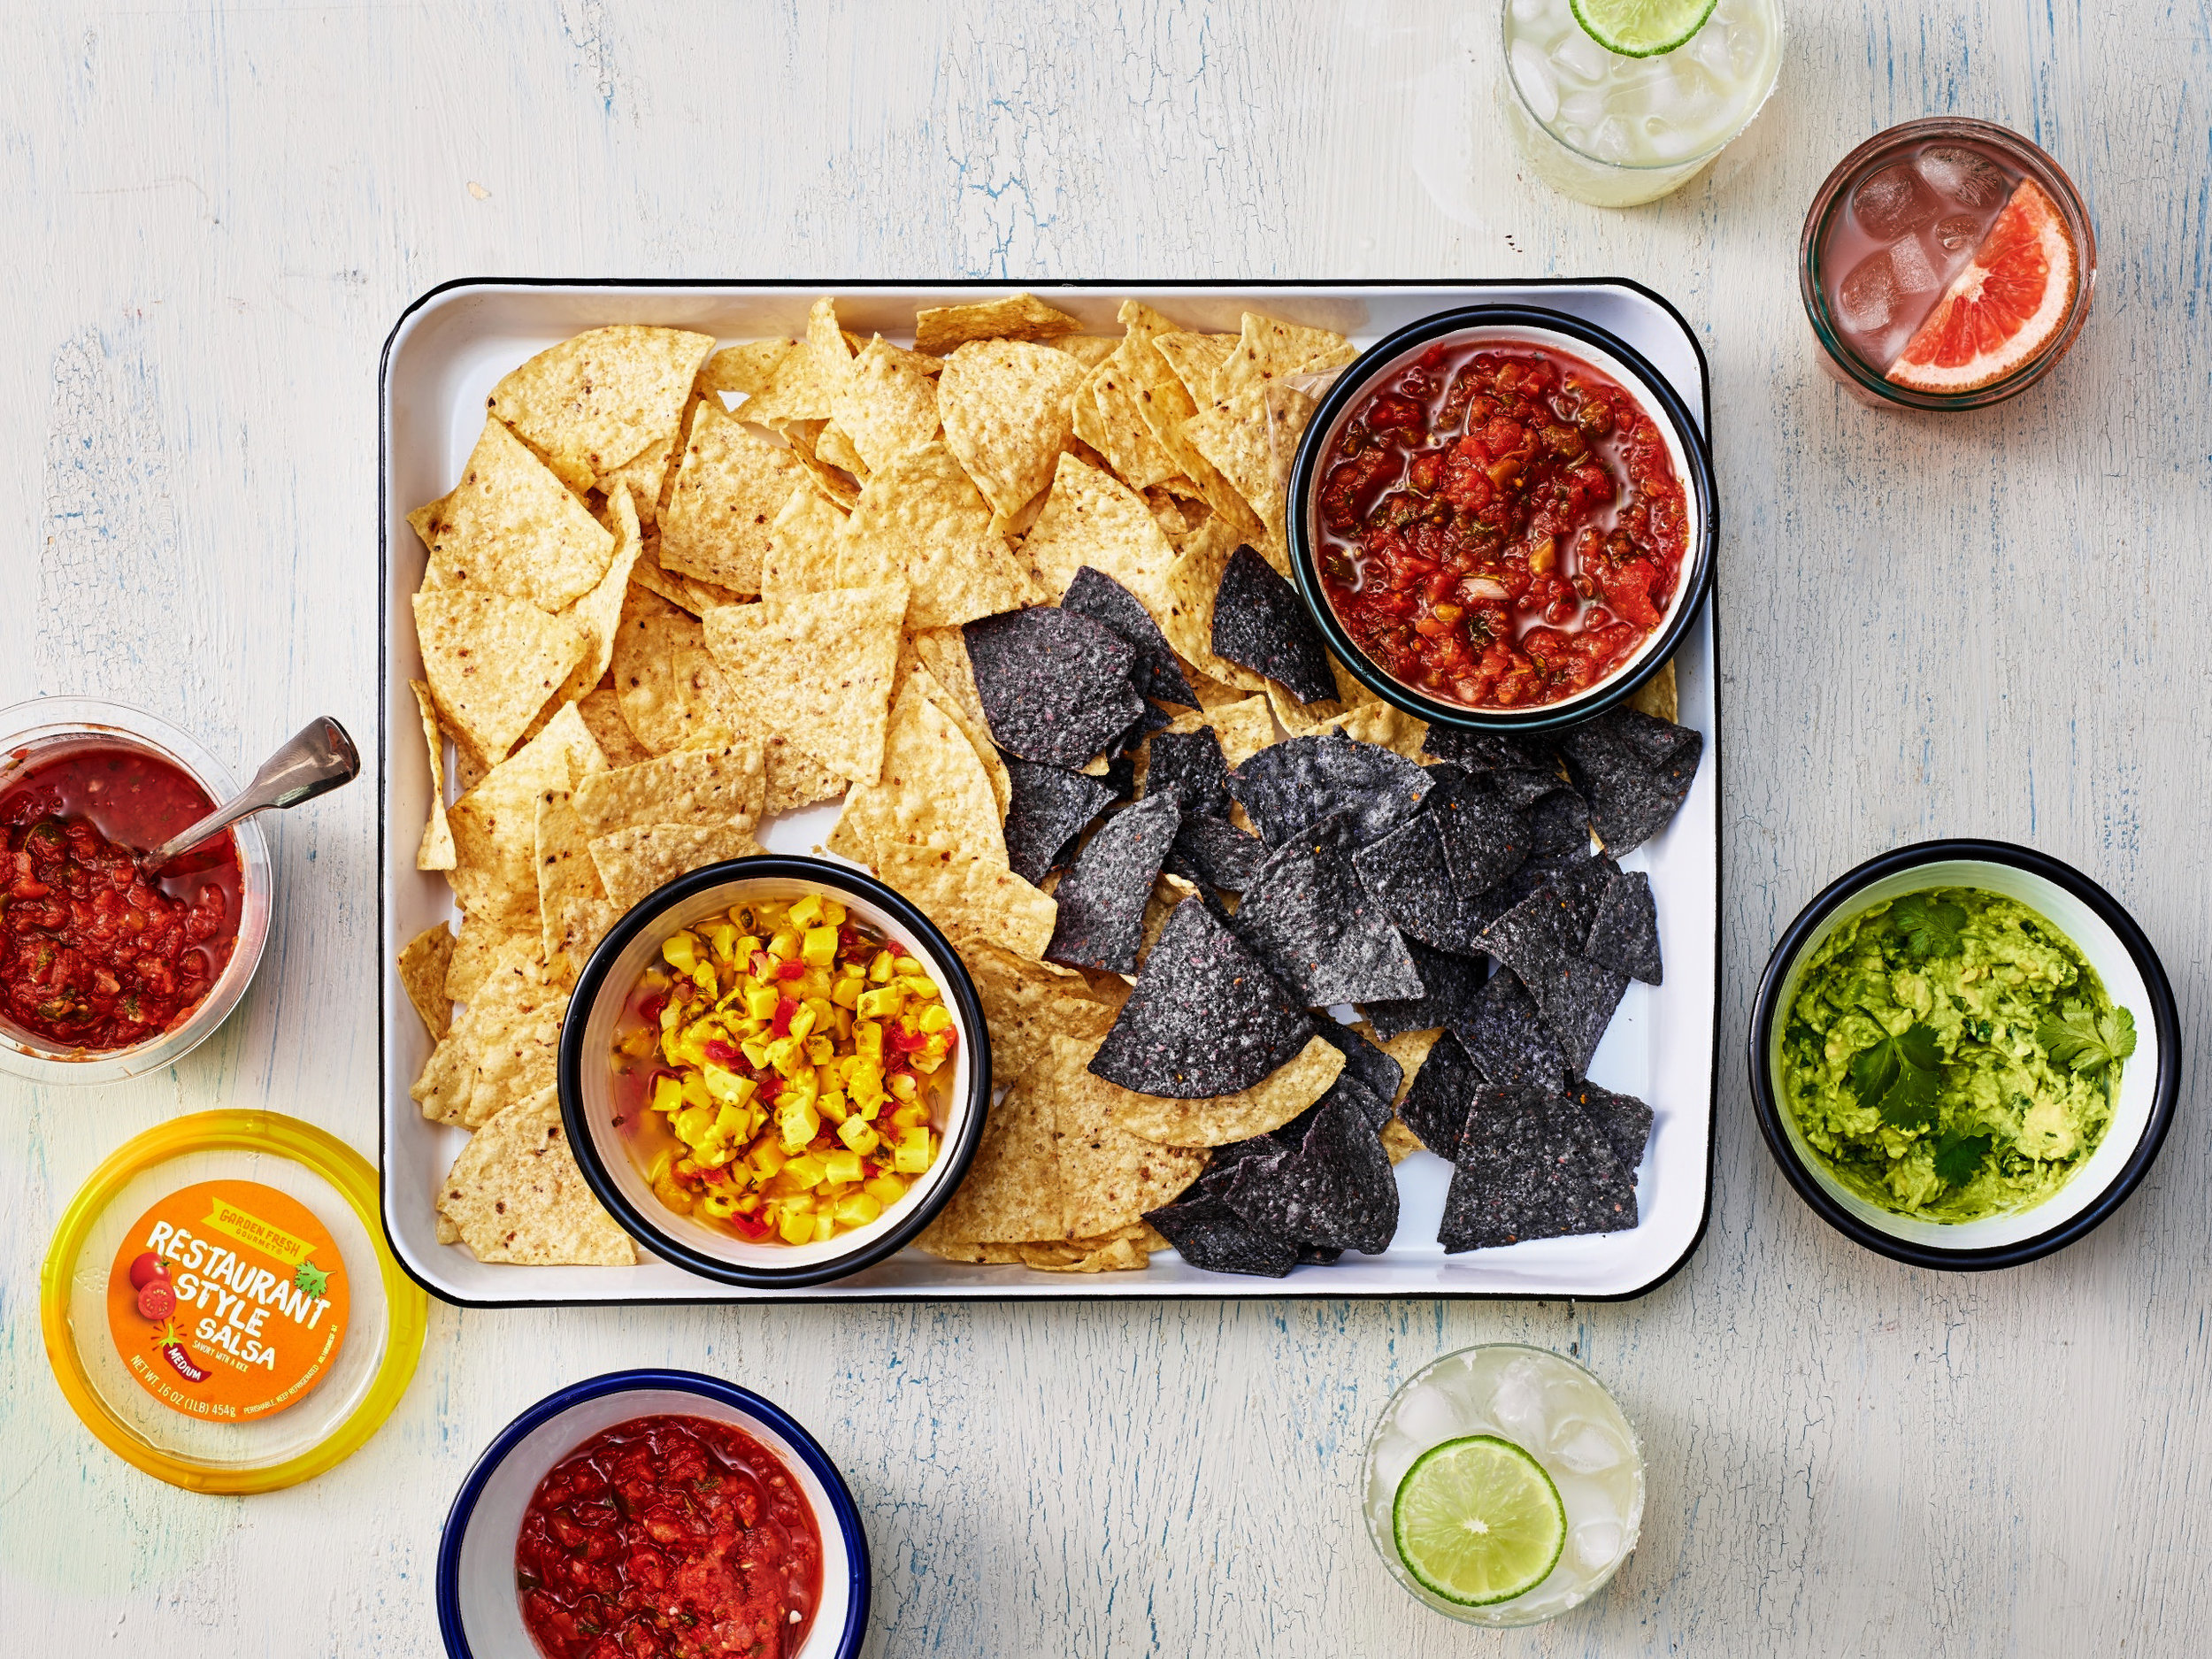 chips, salsa and guacamole